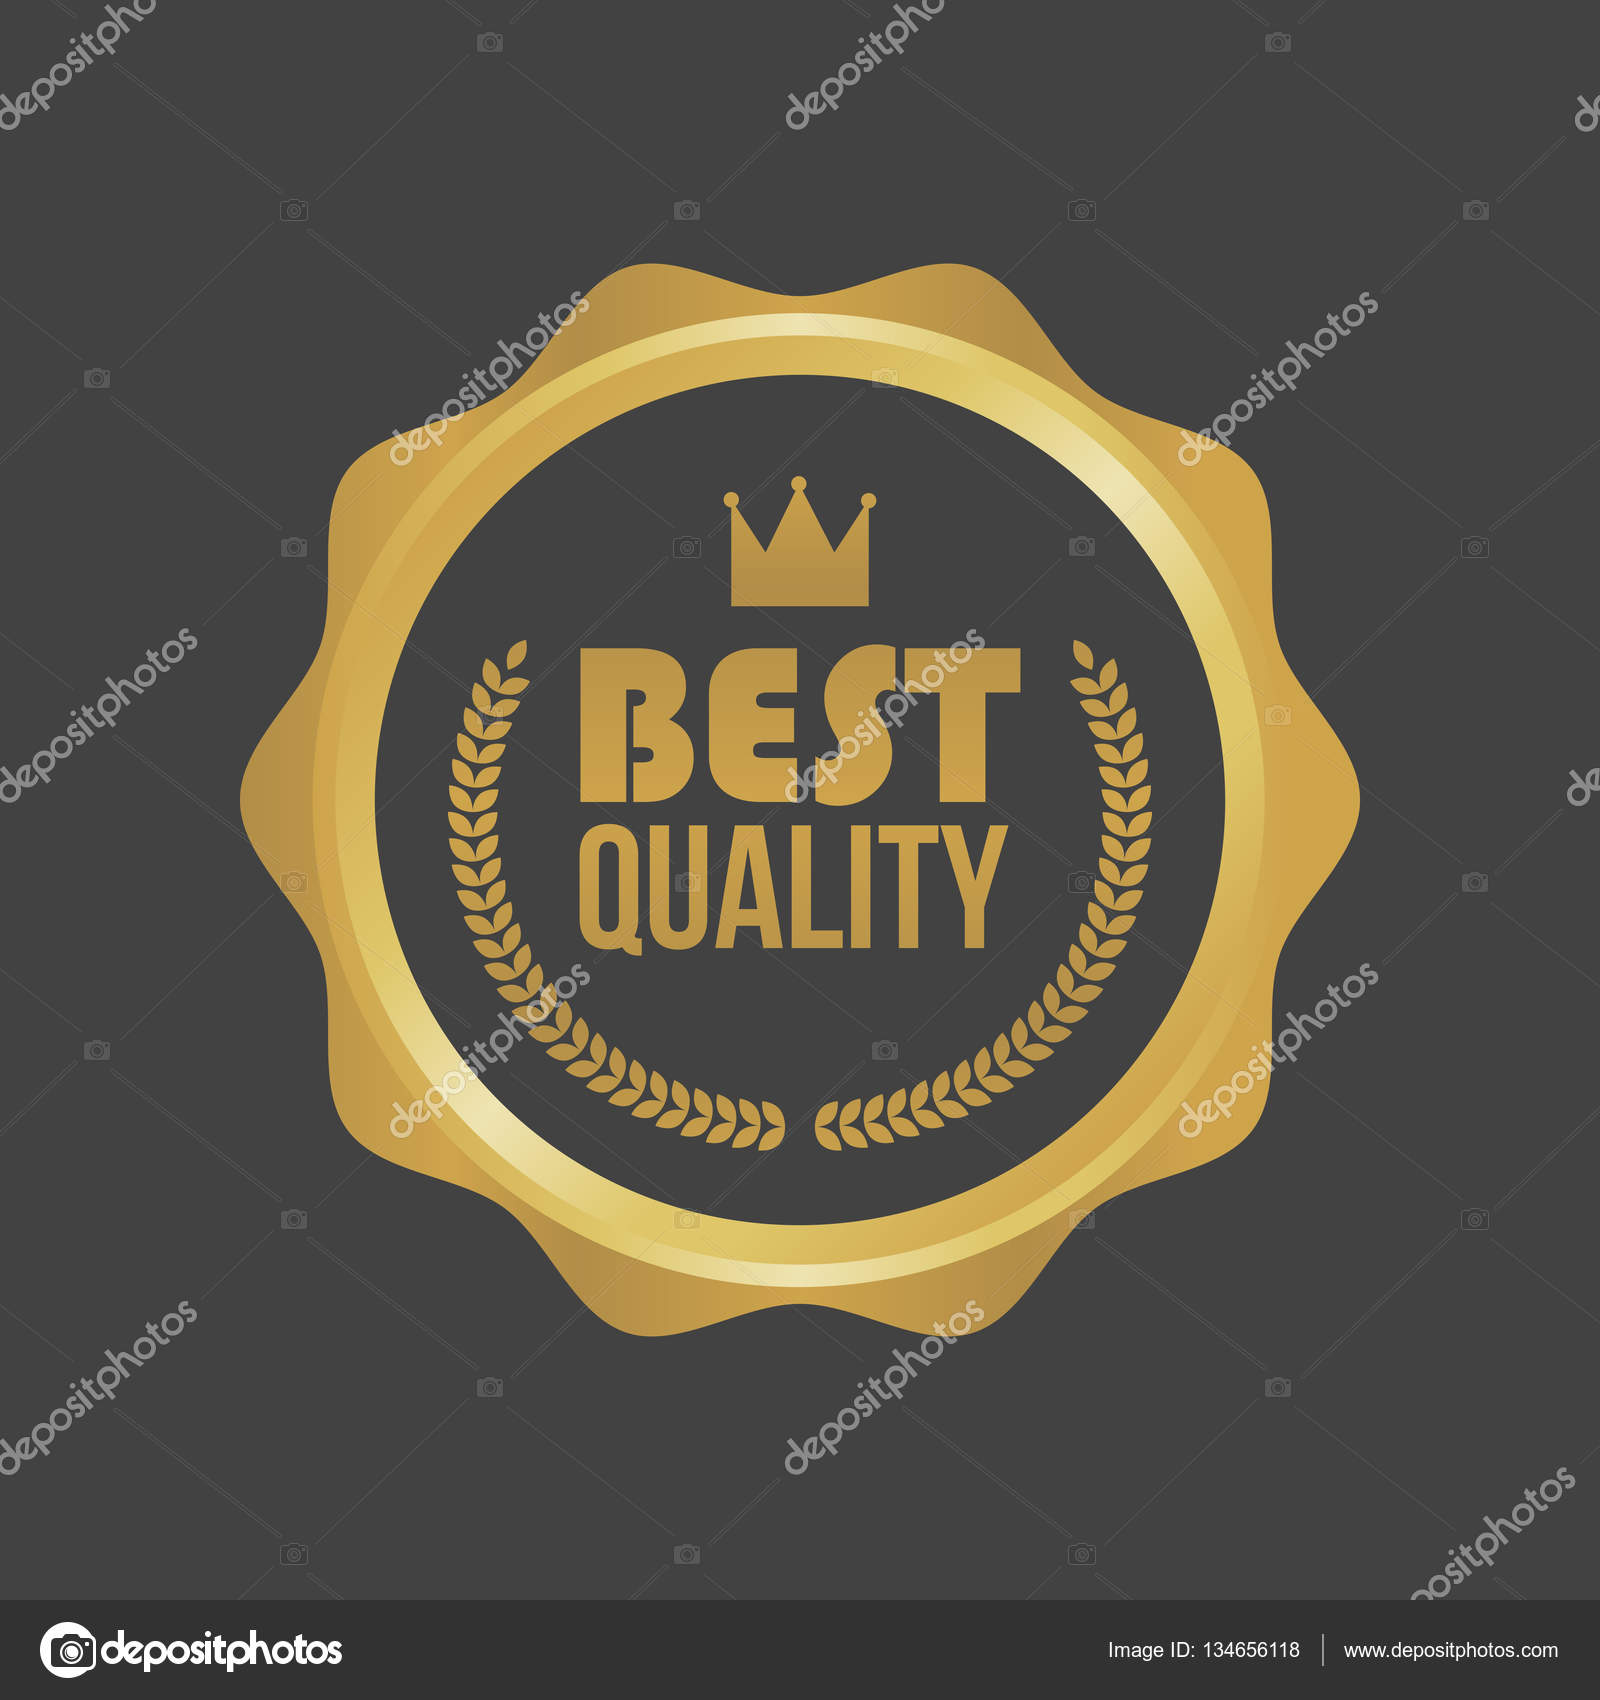 image photo premium gold stock illustration certificate quality